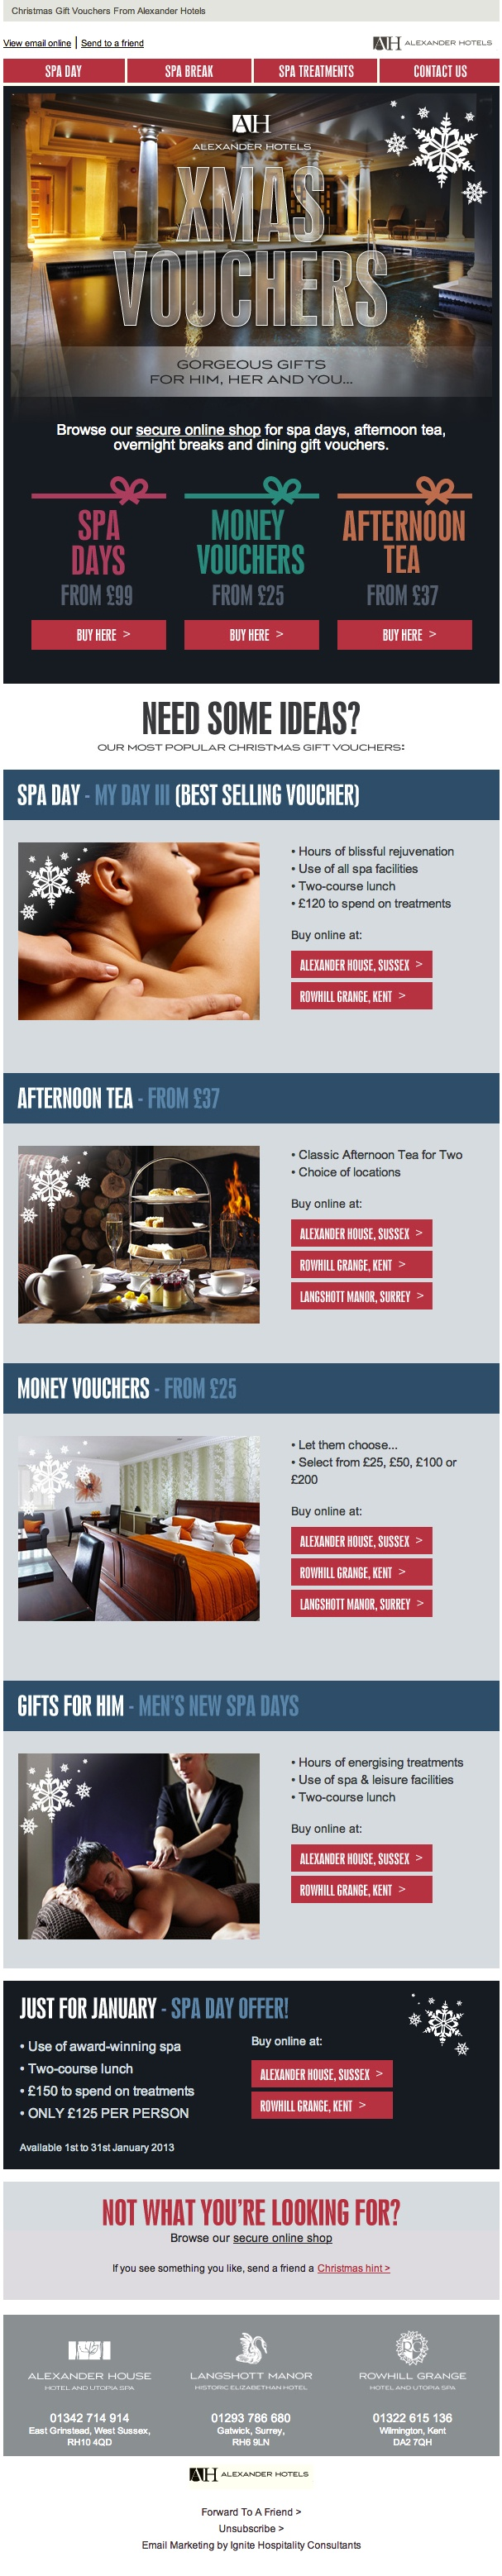 Christmas newsletter for Alexander Hotels 2012.    We've worked very closely with the client to get the brand to this point - very happy the balance between quality and impact.